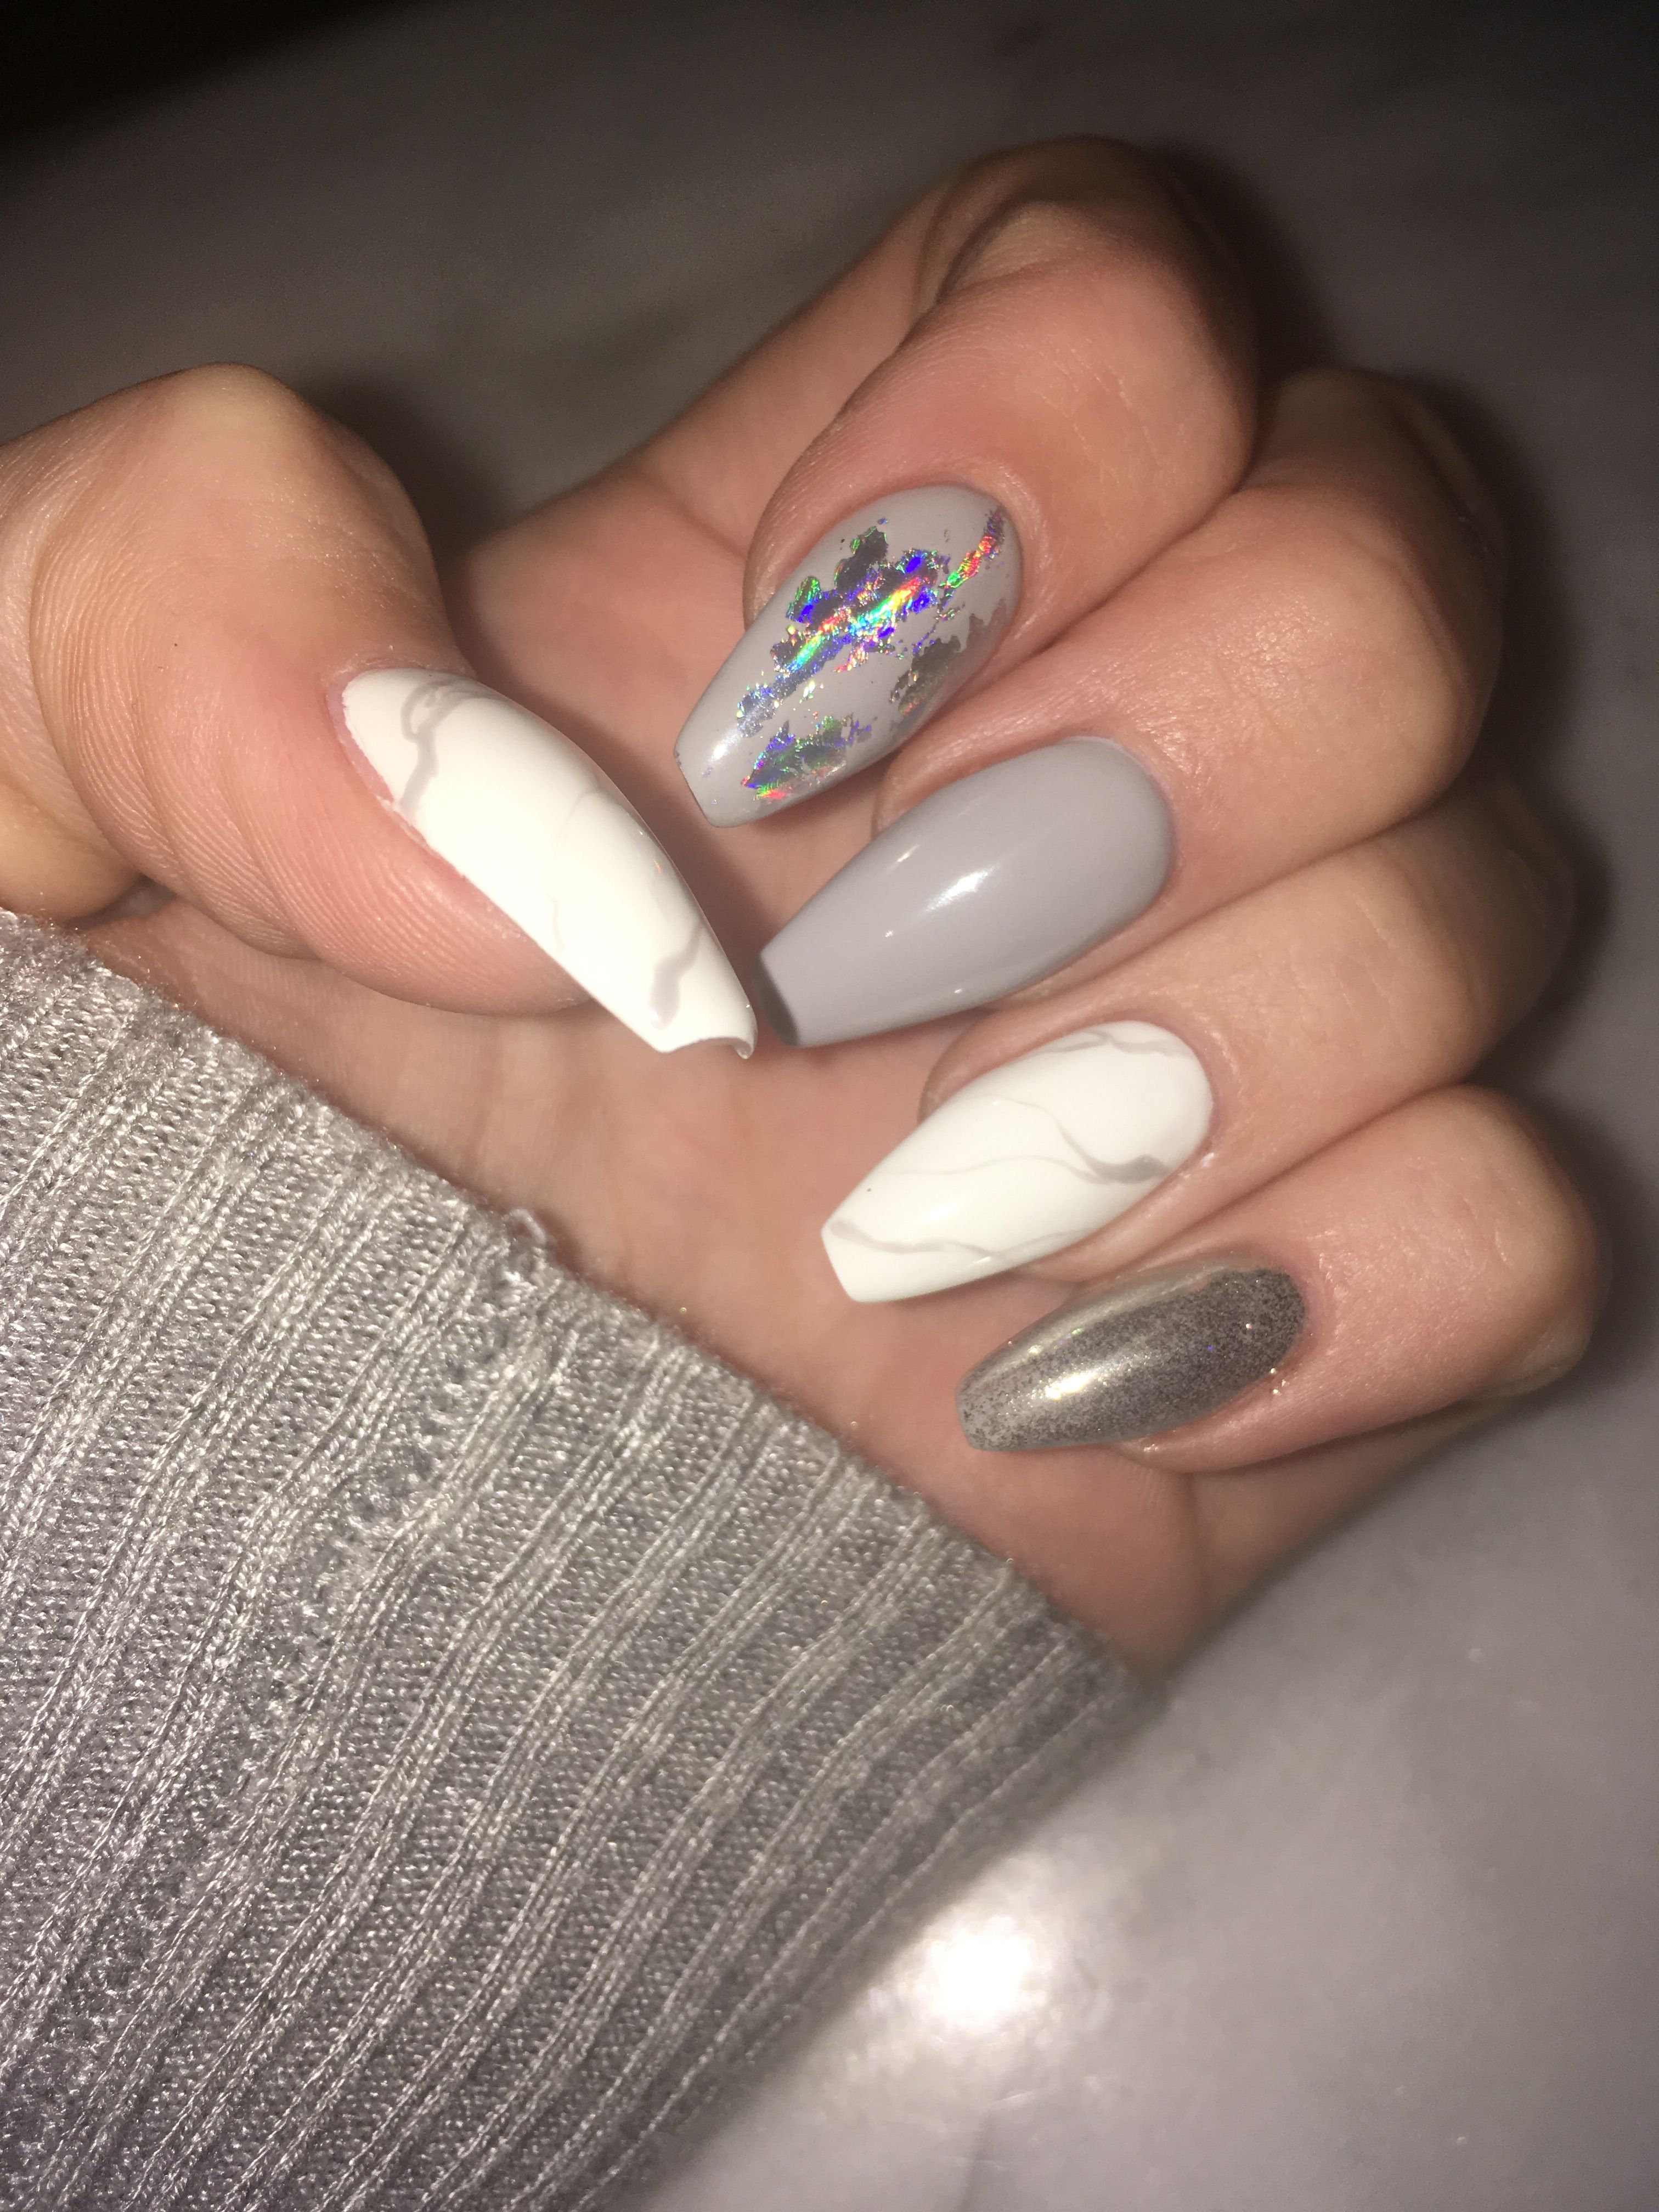 Grey And Marble Winter Nails Nails Acrylic Grey White Marble Coffin Chrome Fashion Foils Glam Chrome Nails Designs Winter Nails Acrylic Chrome Nails